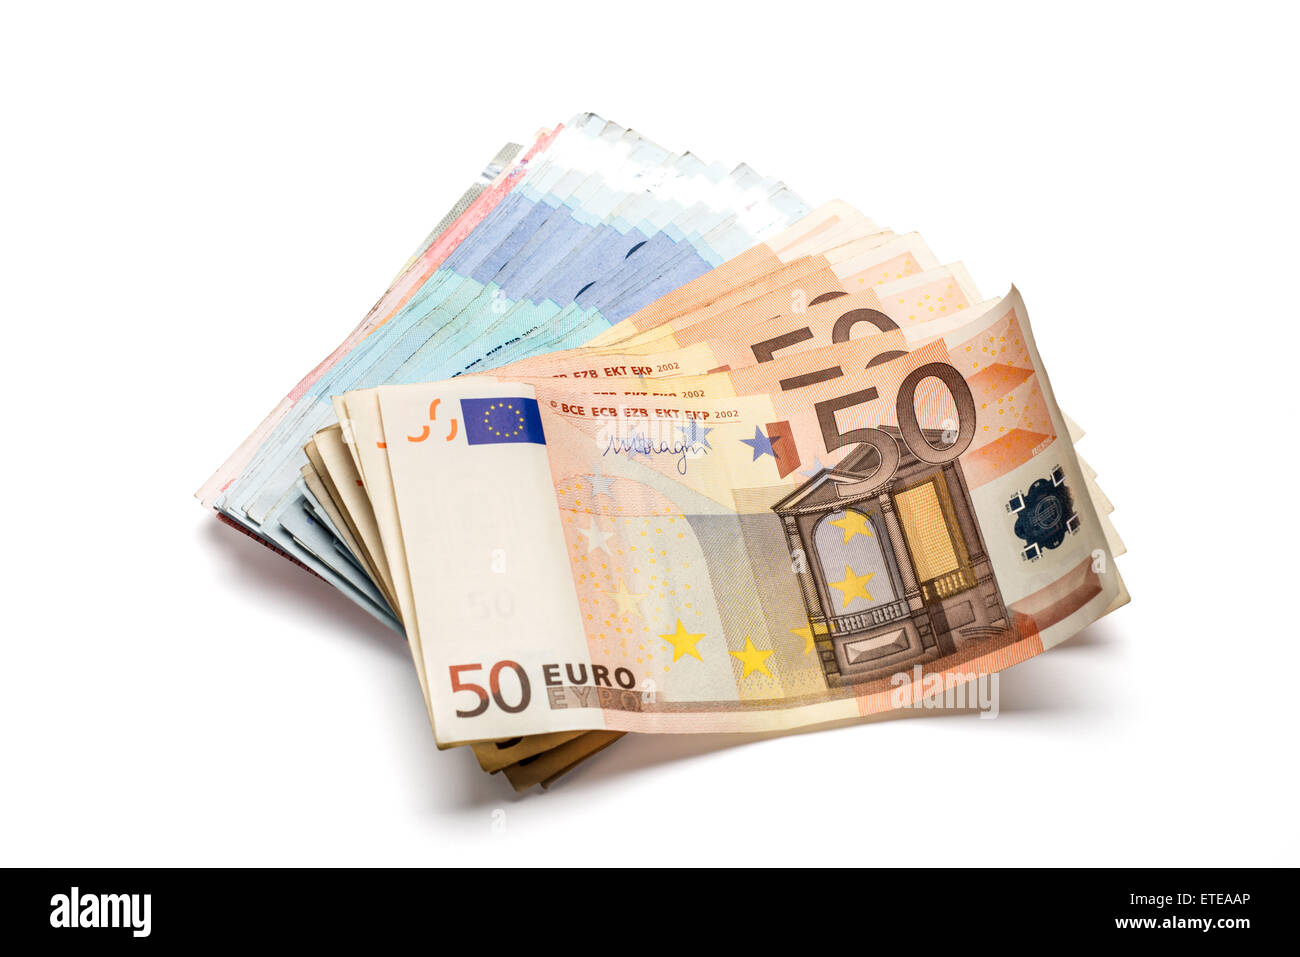 Bunch of euro banknotes of various denominations. Isolated on white - Stock Image